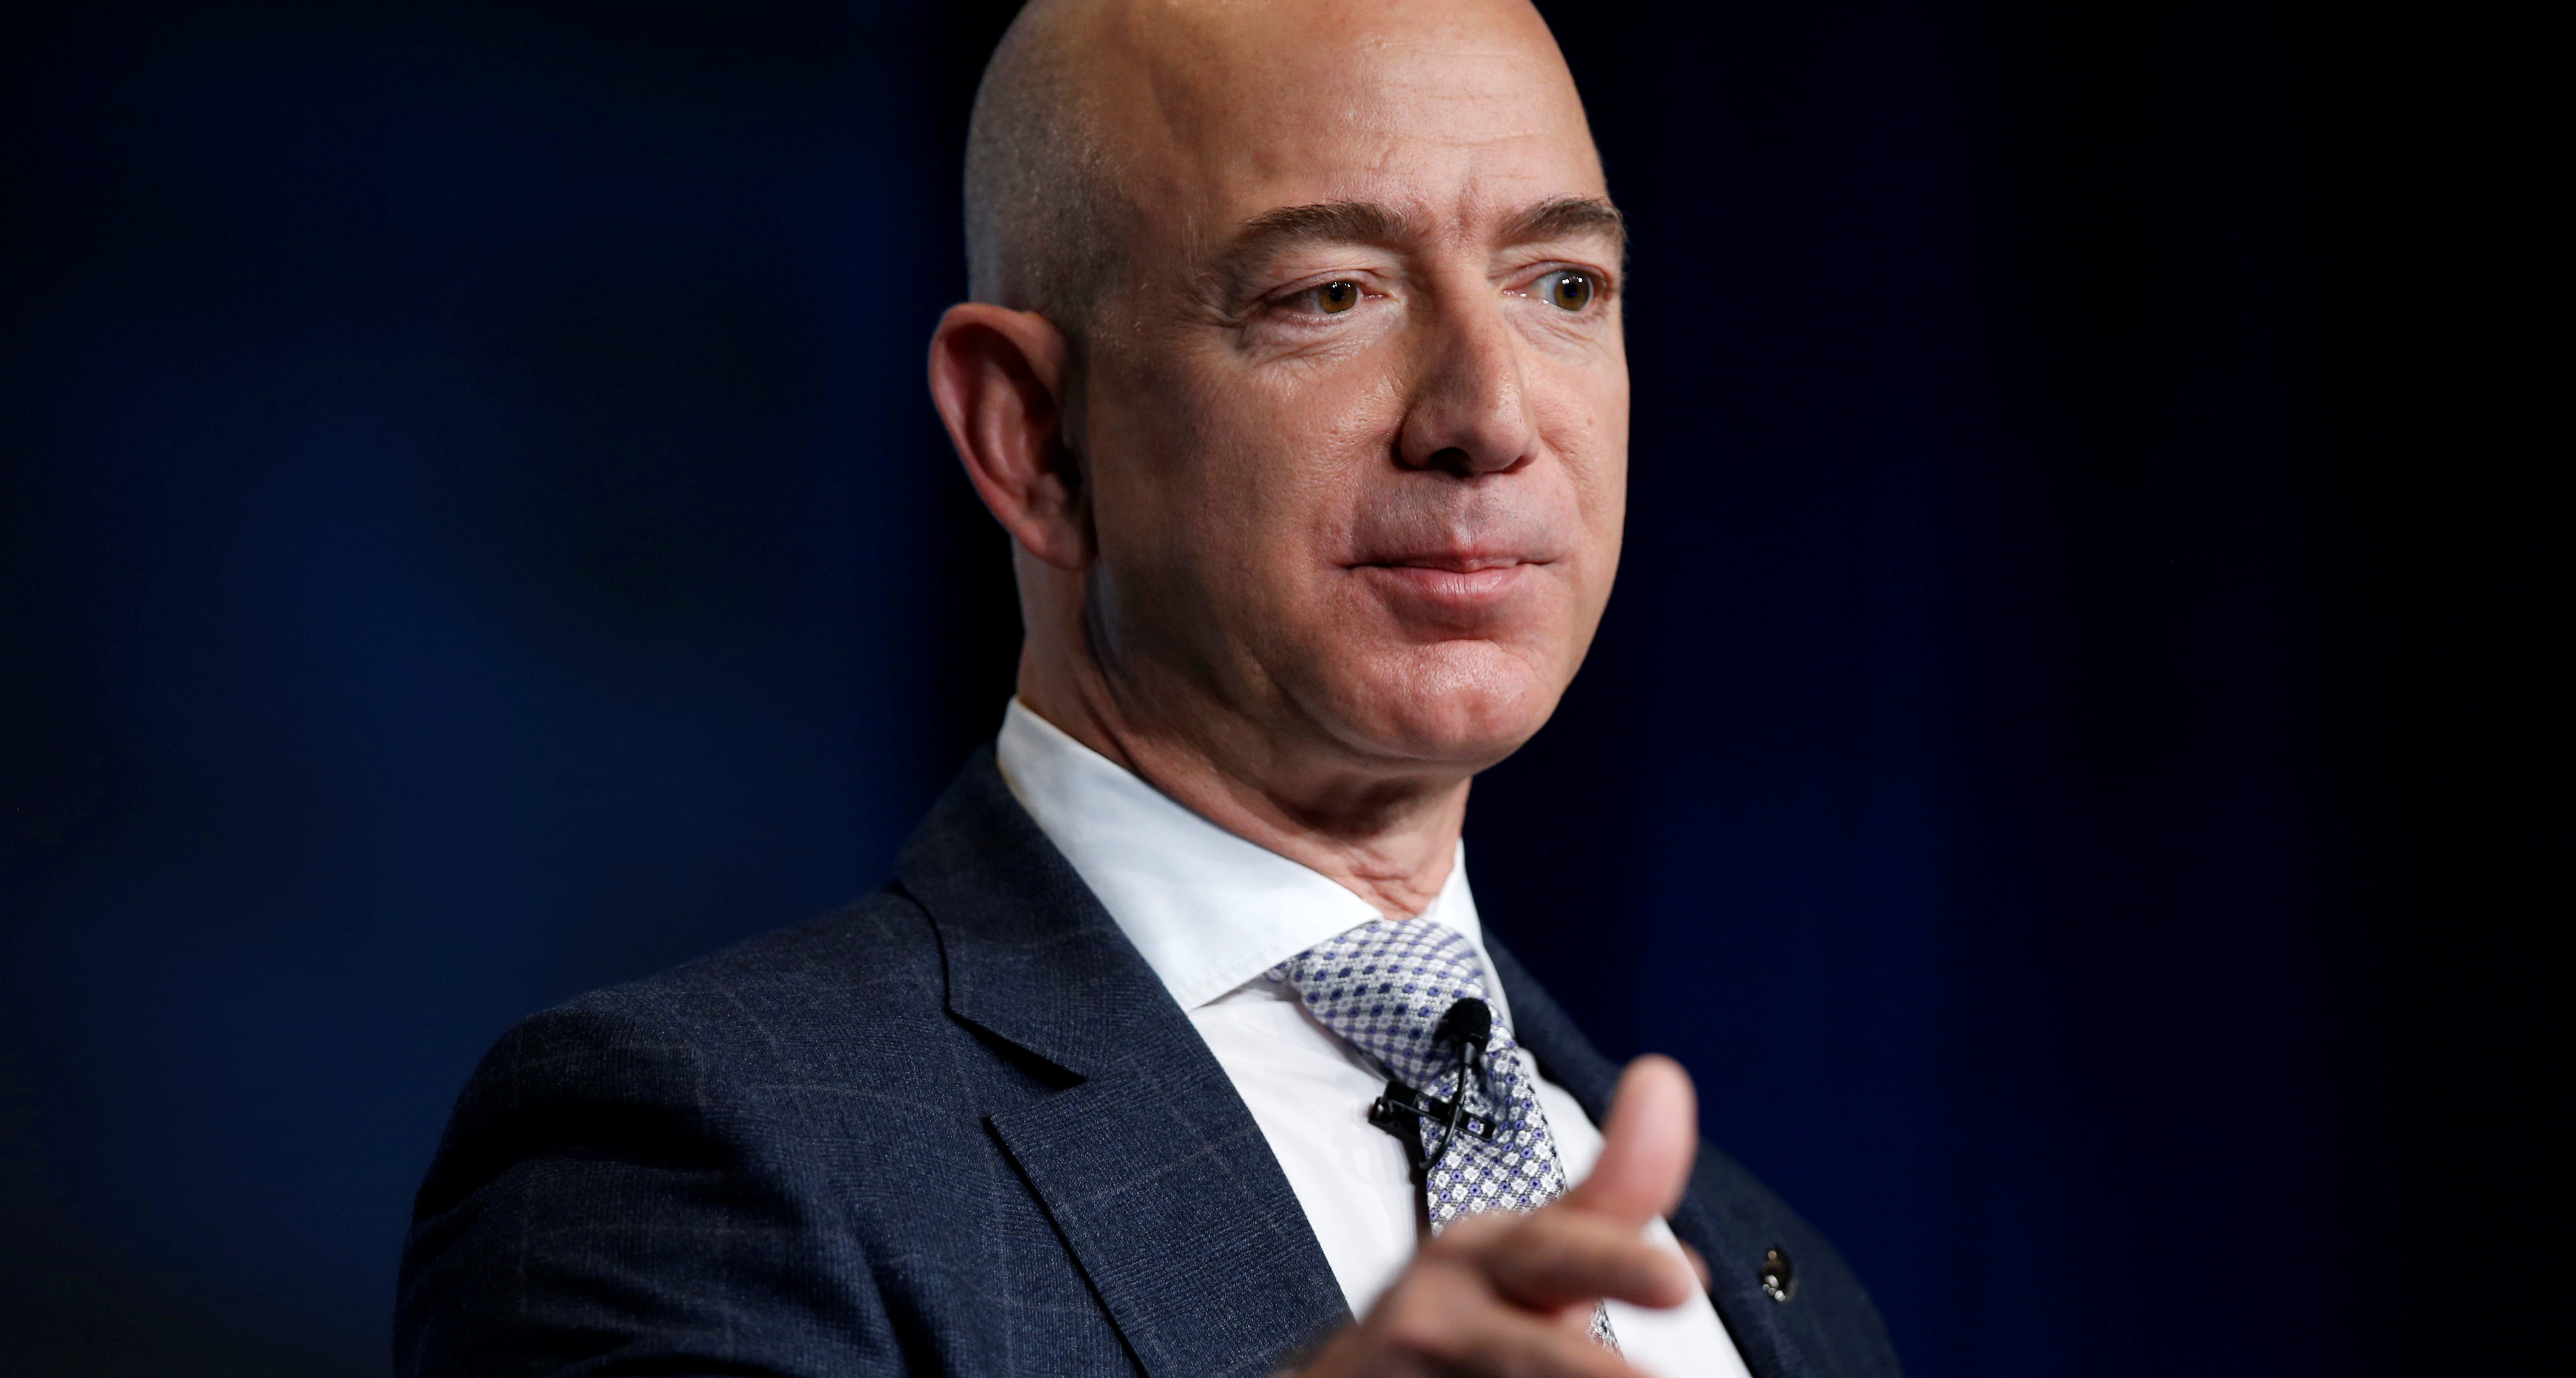 Jeff Bezos, founder of Blue Origin and CEO of Amazon, speaks about the future plans of Blue Origin during an address to attendees at Access Intelligence's SATELLITE 2017 conference in Washington, U.S., March 7, 2017. REUTERS/Joshua Roberts - RTS11SSO